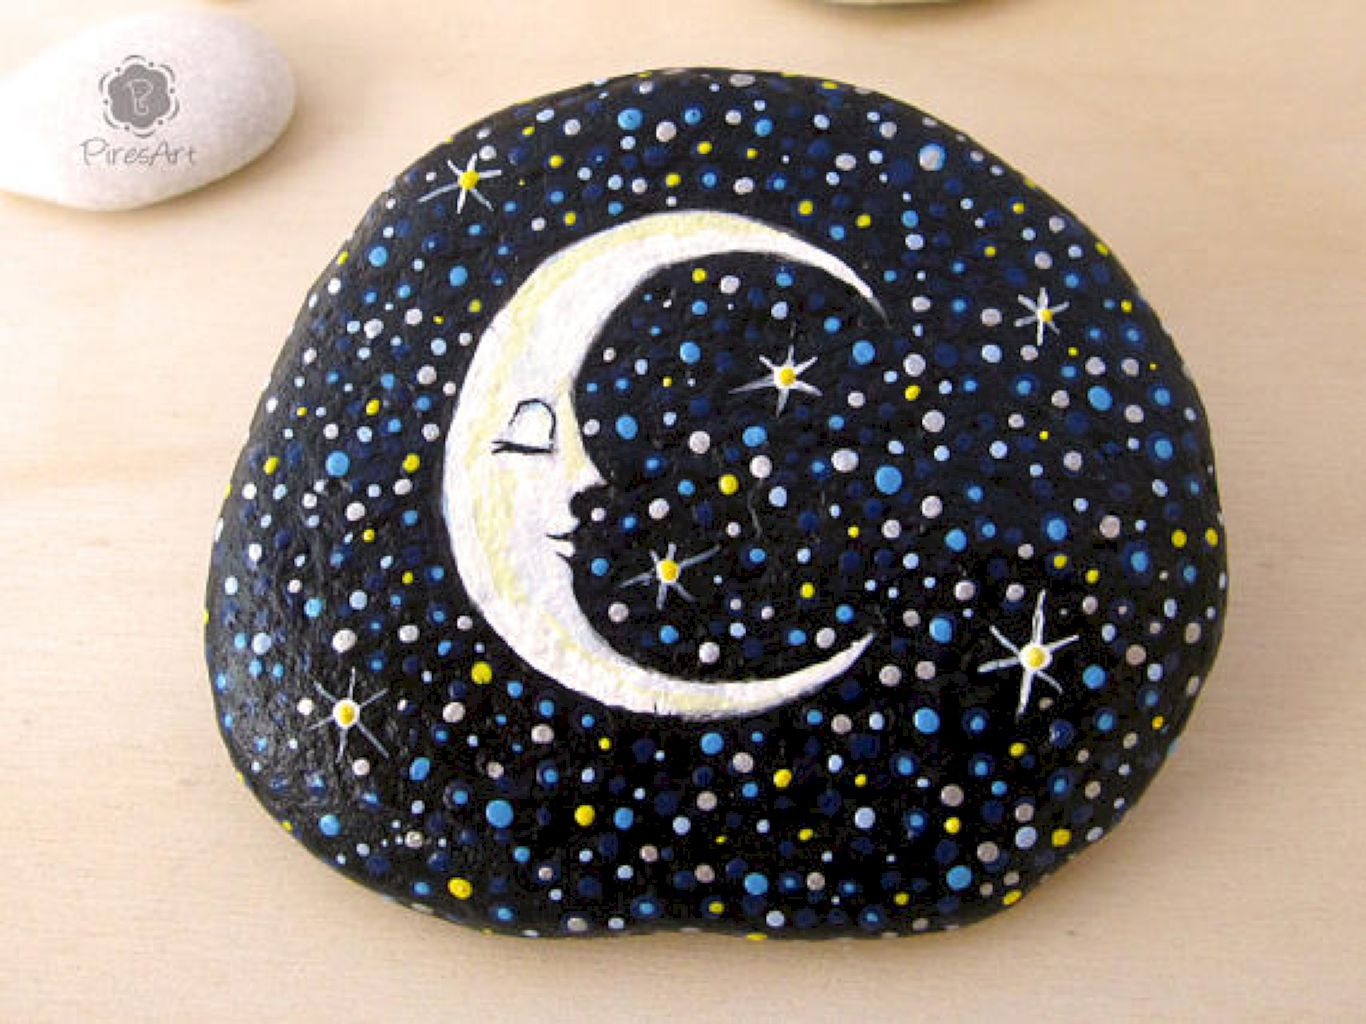 How To Paint Rocks Step By Step Painted Rock Ideas Painting Ideas Projects